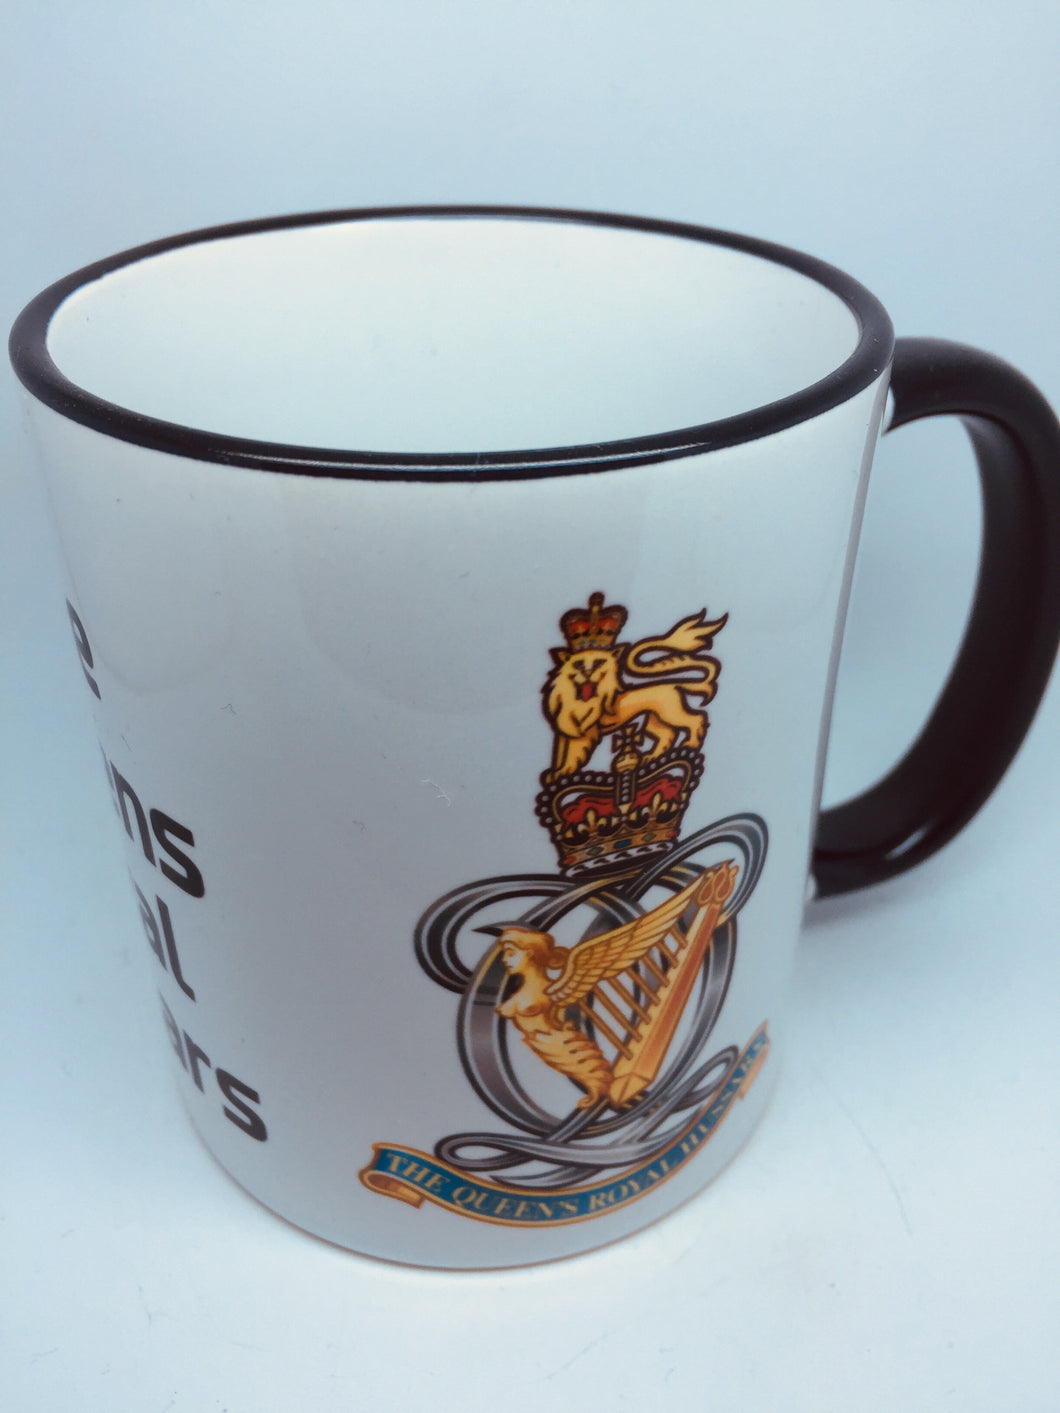 Queens Royal Hussars Coffee/Travel Mug